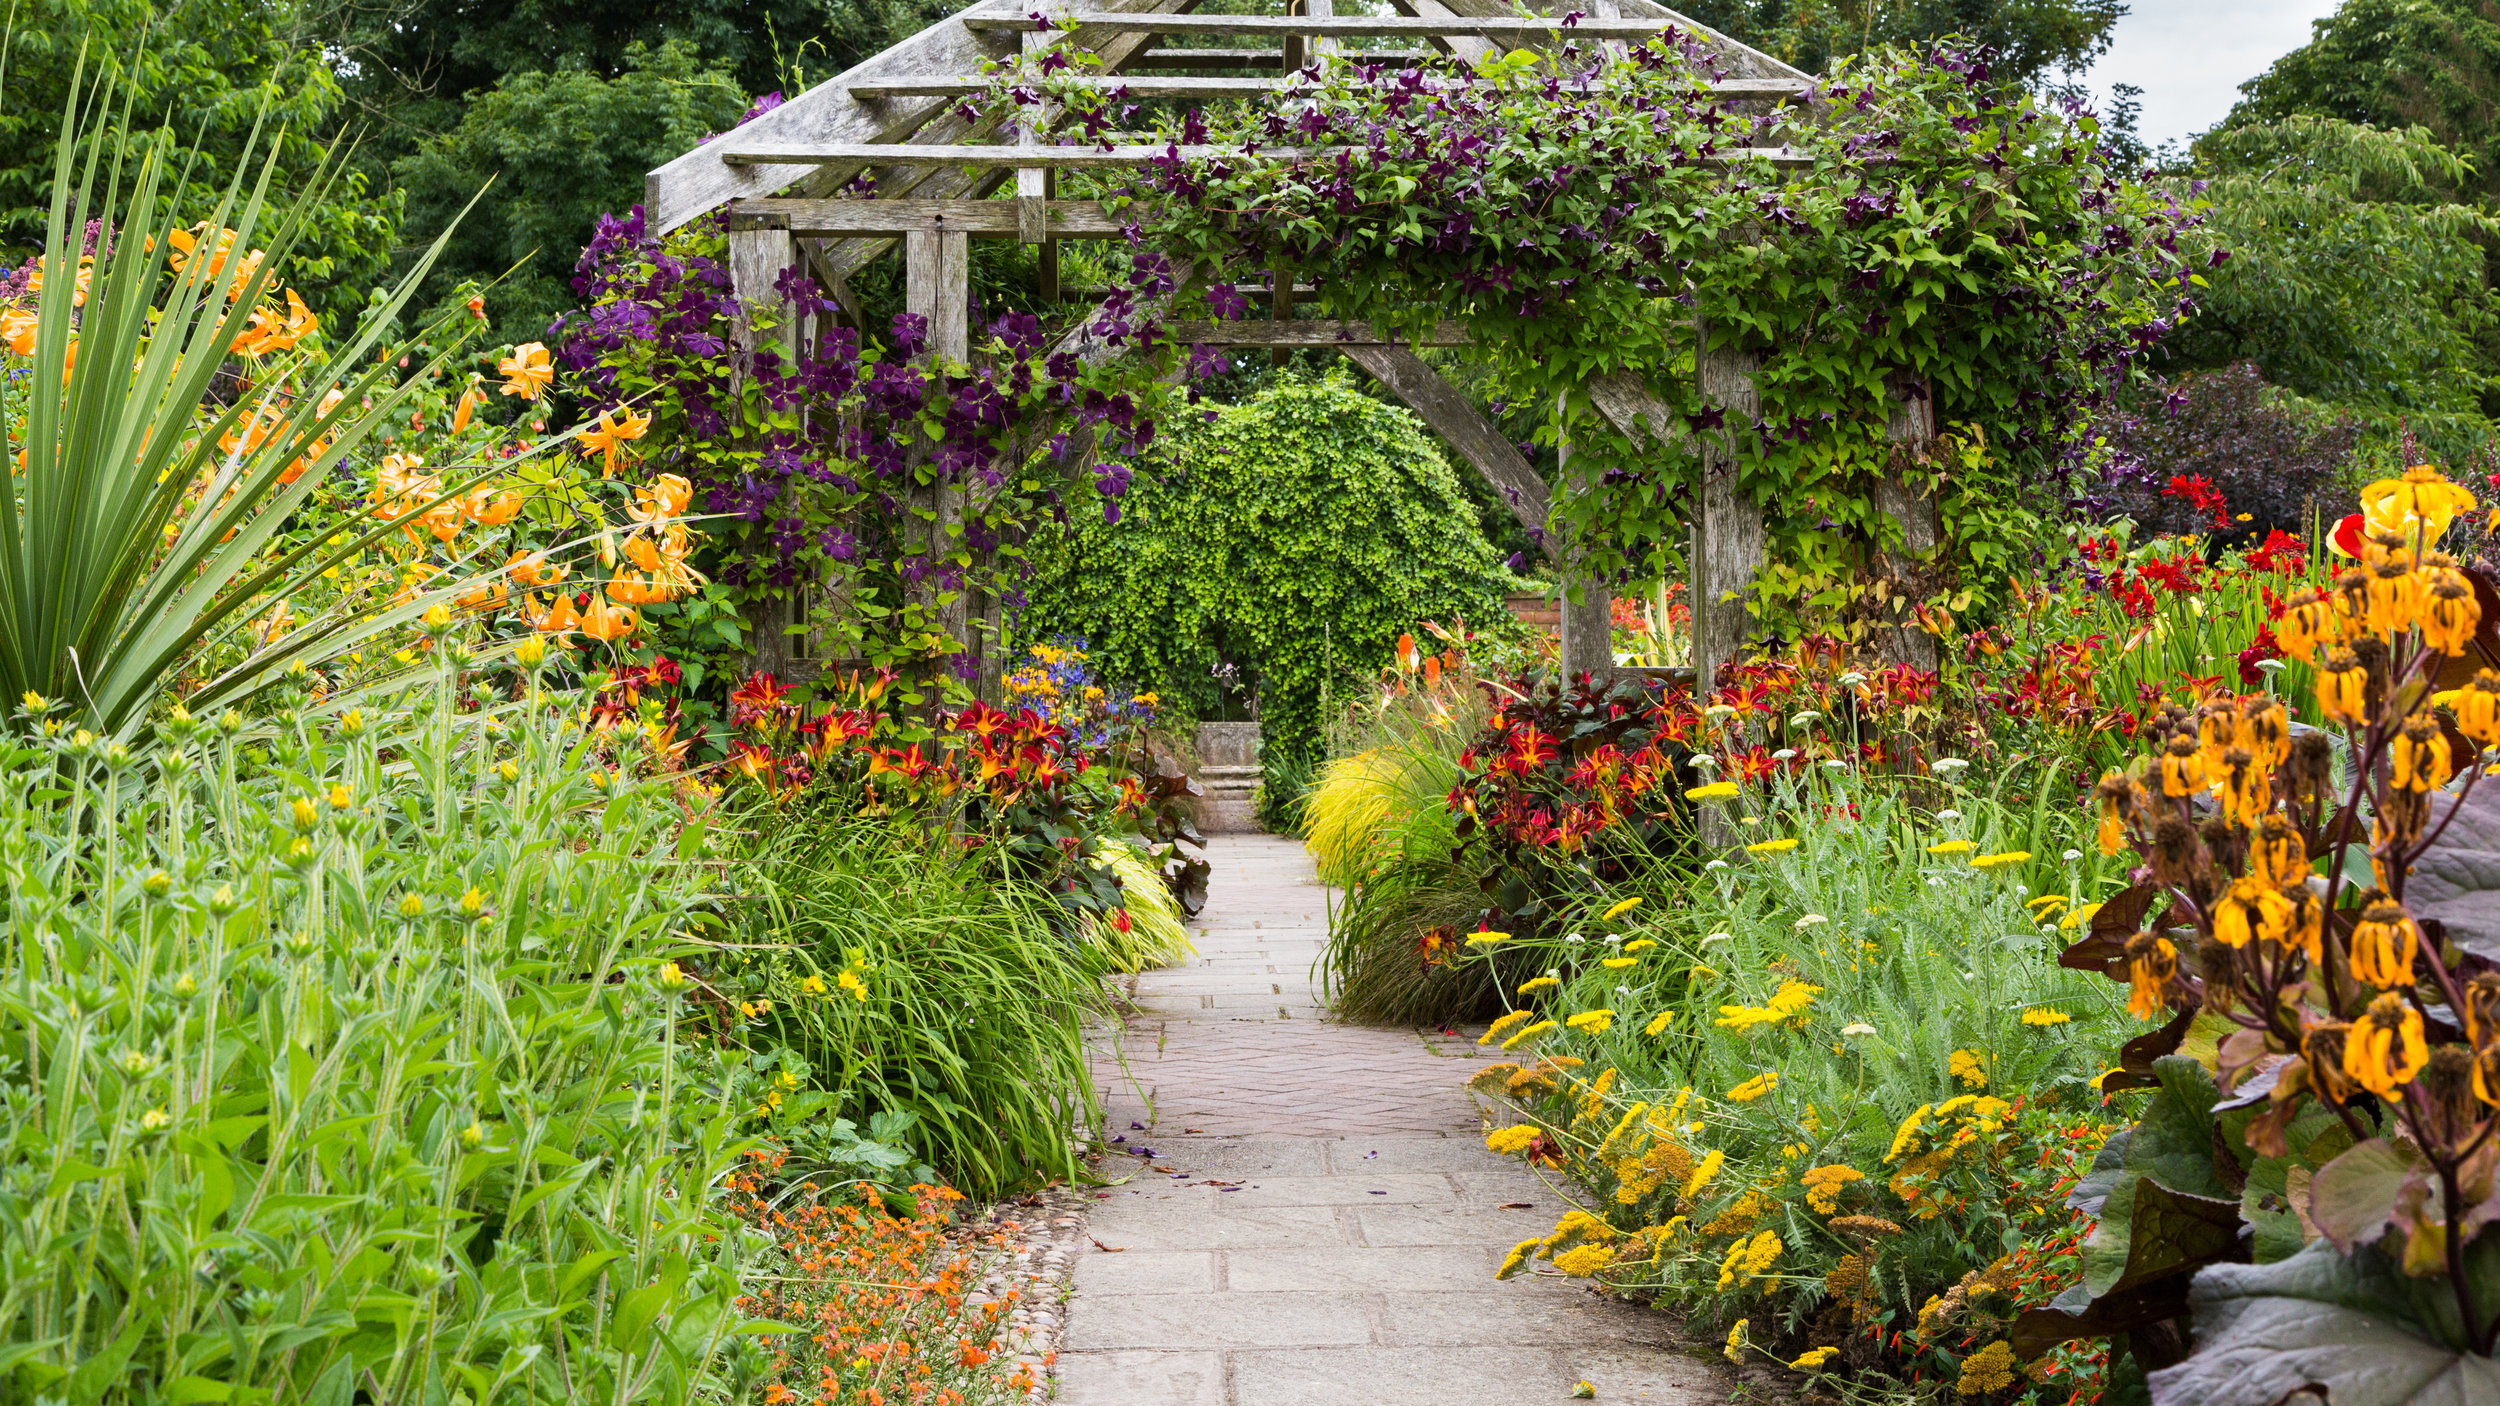 Warm Colours in Deep Tones Add Drama To the Pergola at Wollerton Old Hall. Image: Chris Denning/Verve Garden Design.